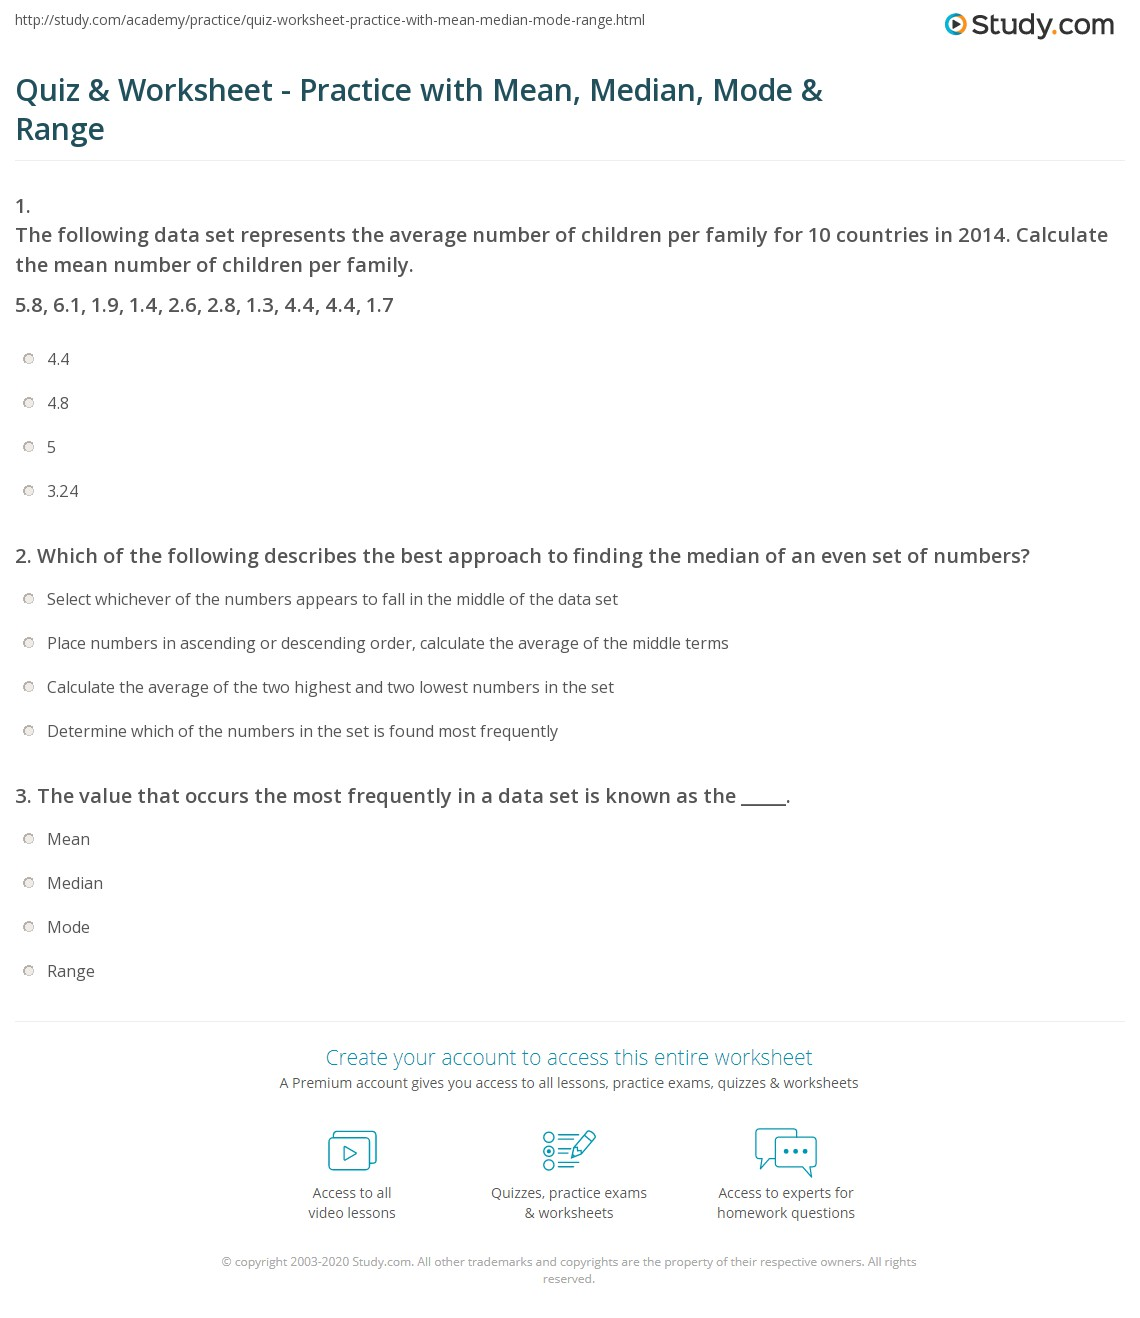 worksheet Mean Median Mode Range Printable Worksheets quiz worksheet practice with mean median mode range print calculating the problems worksheet